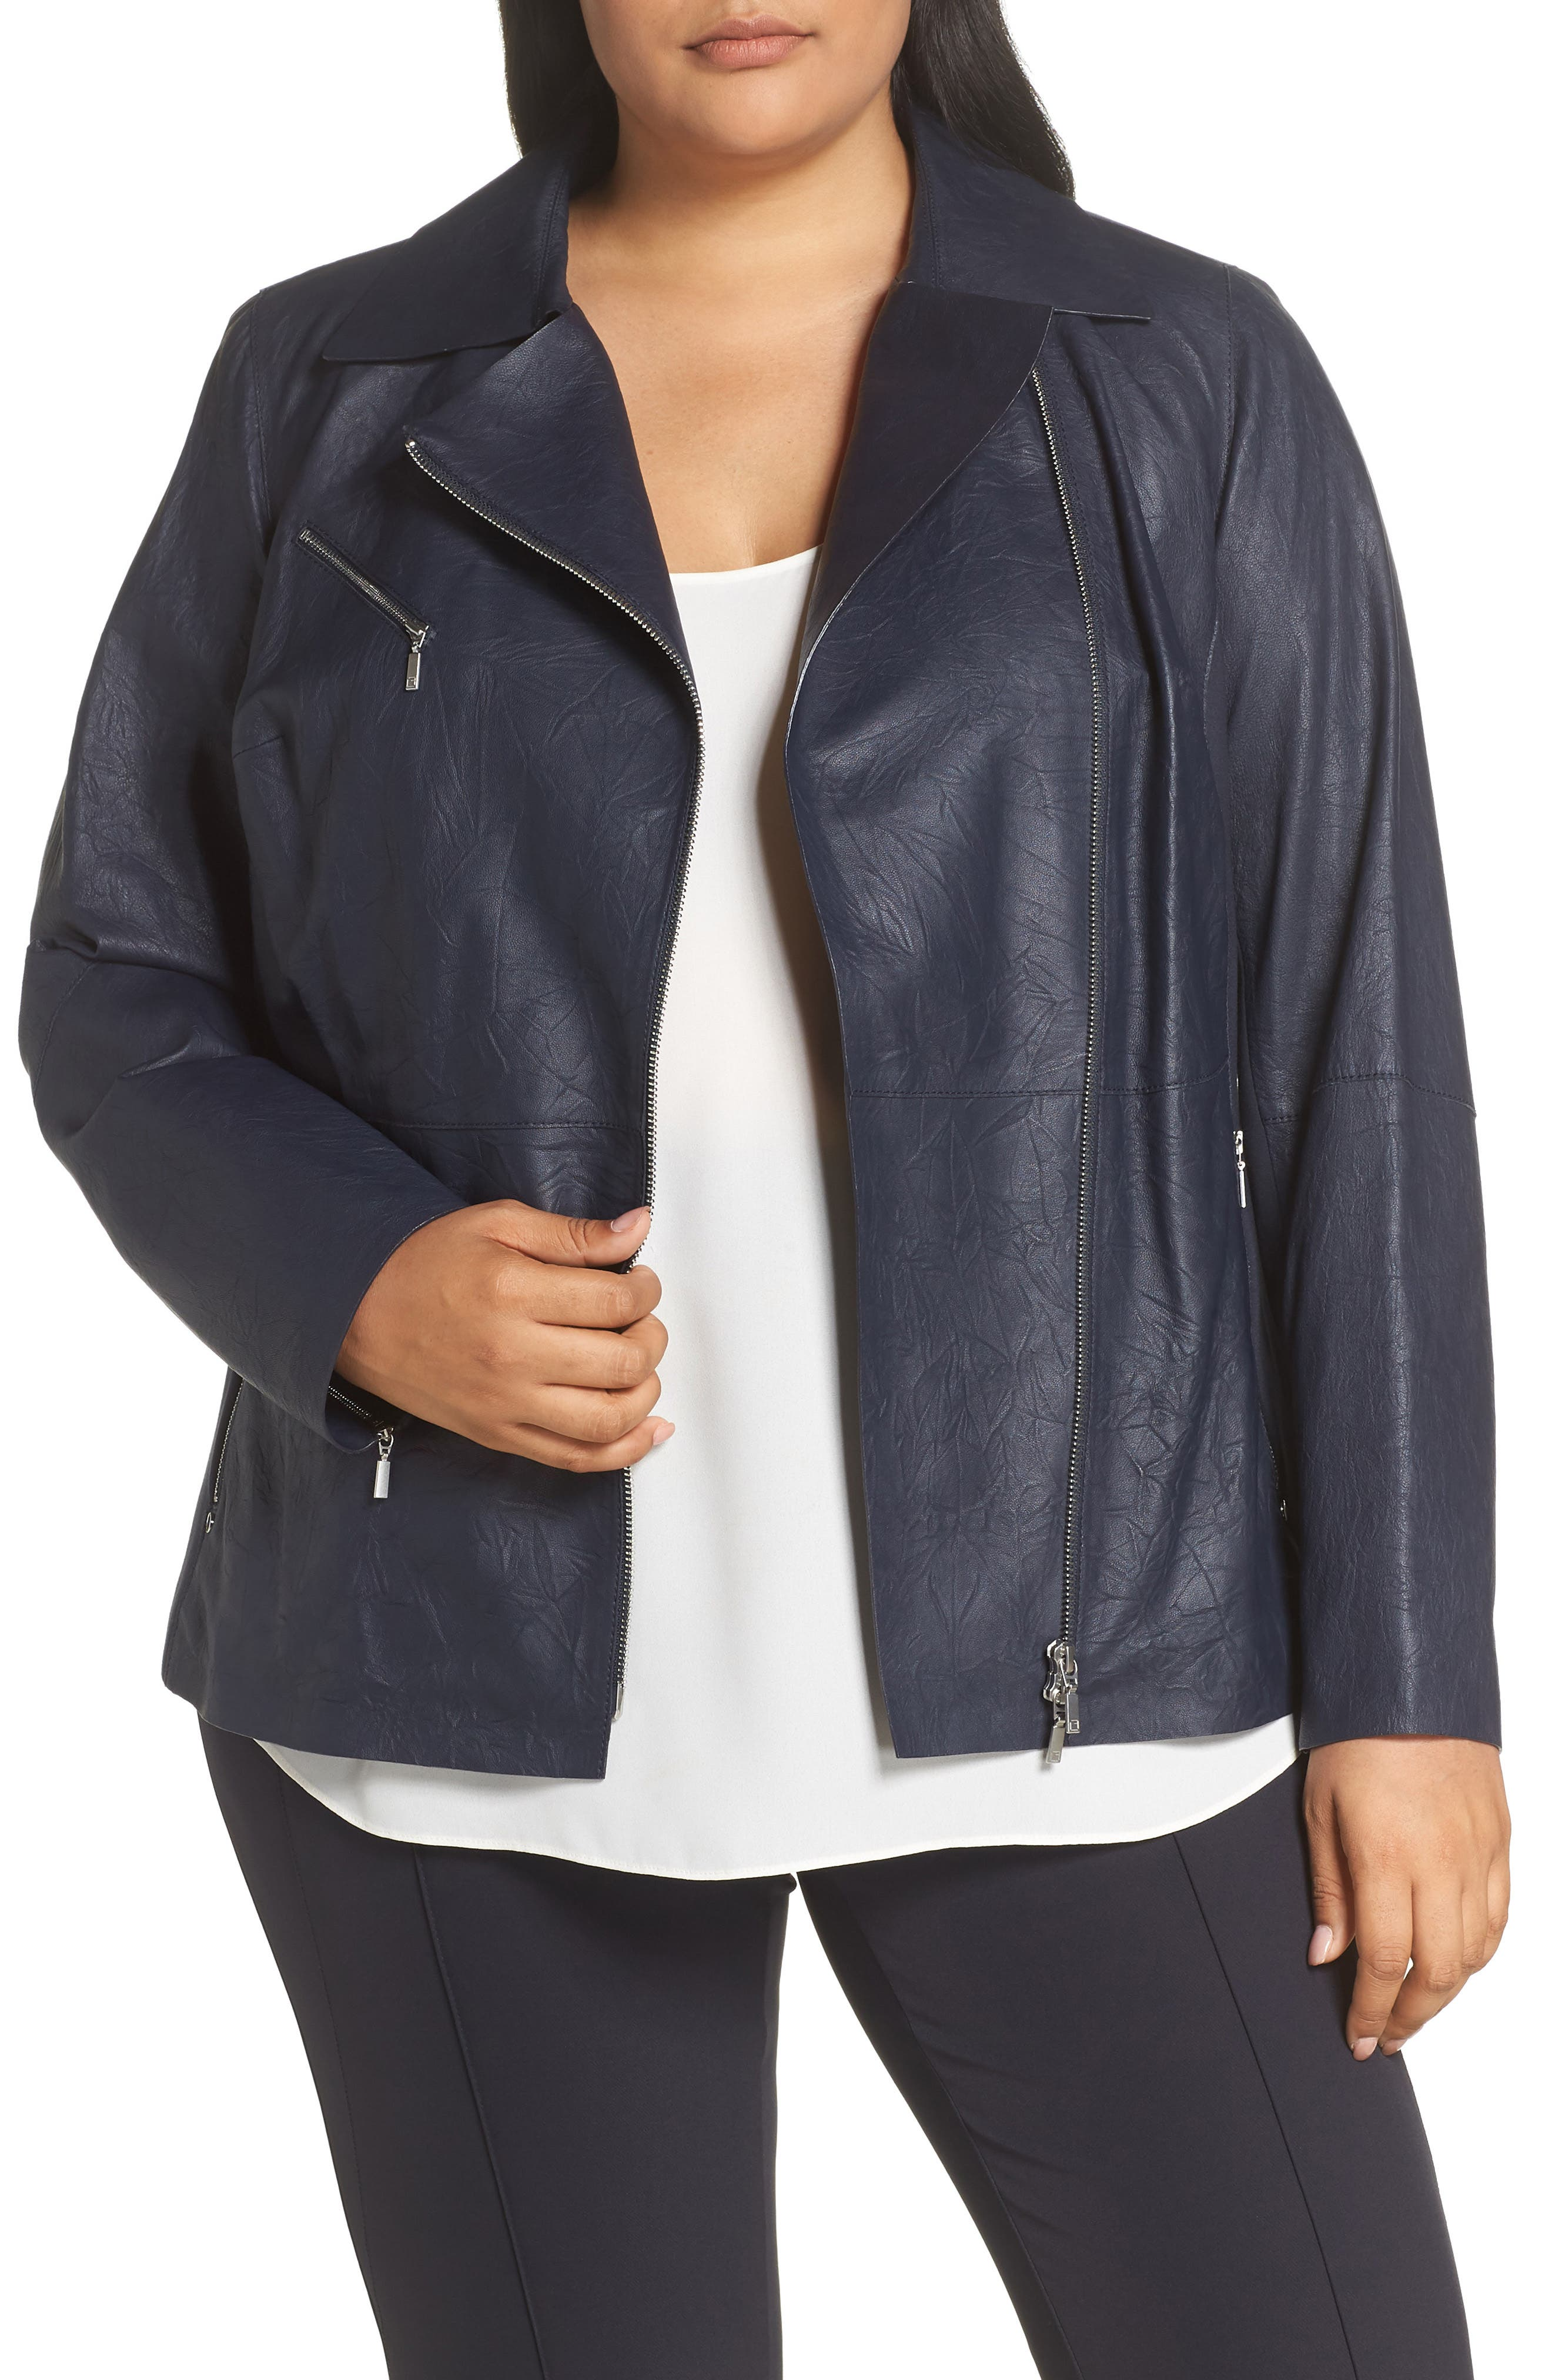 Lafayette 148 Elwood Ponte Detail Leather Moto Jacket,                             Main thumbnail 1, color,                             INK